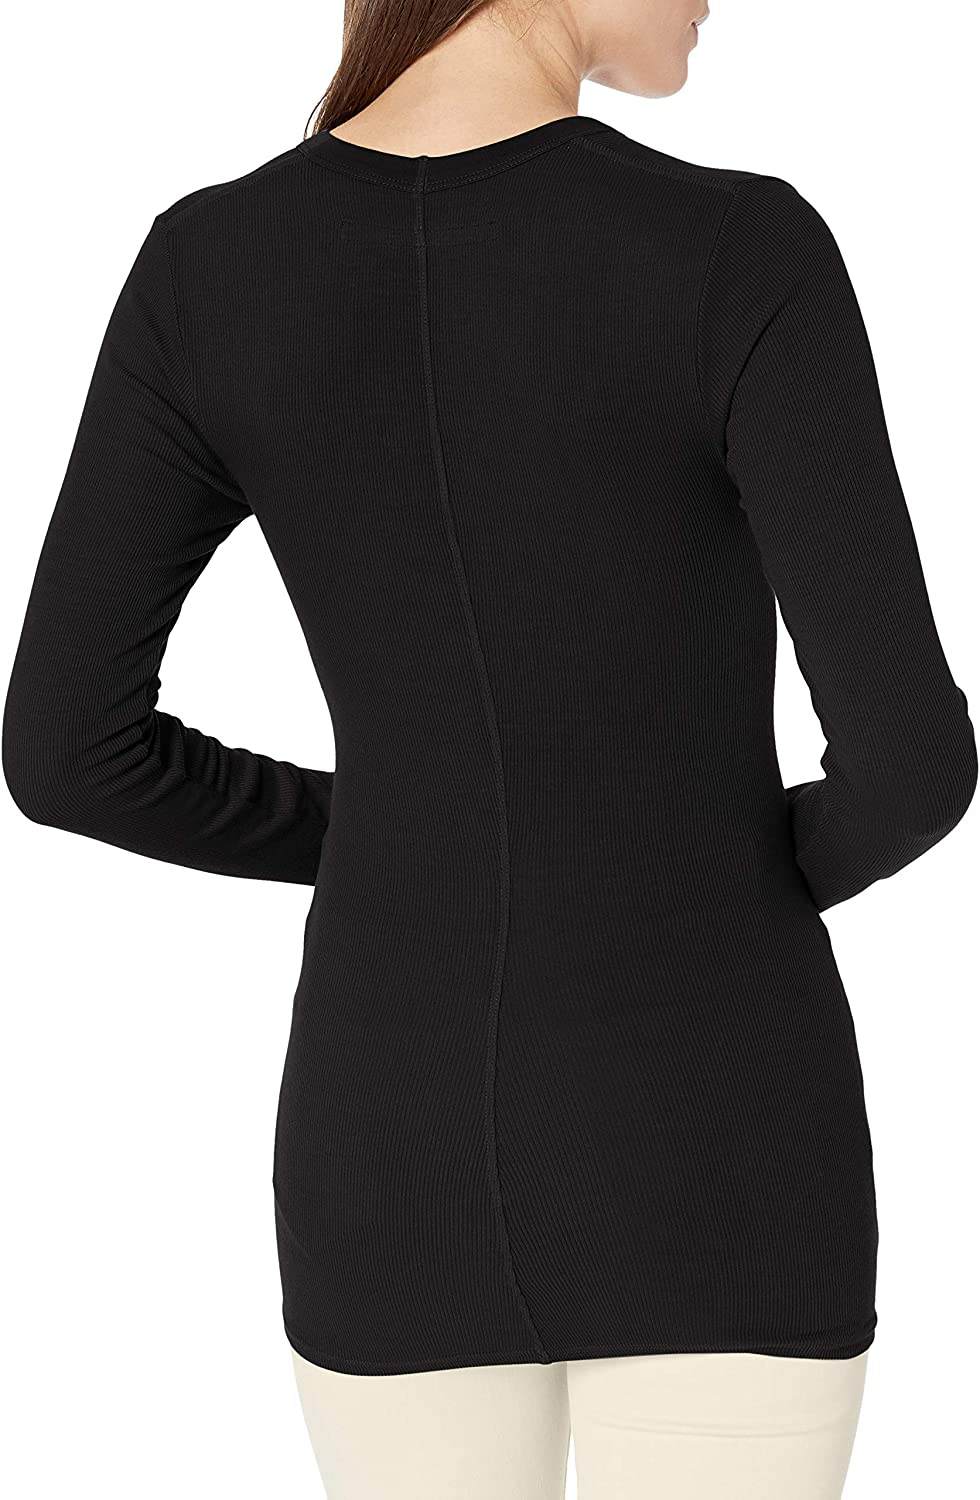 Enza Costa Women's Rib Fitted Long Sleeve U-Neck Top T-Shirt Black